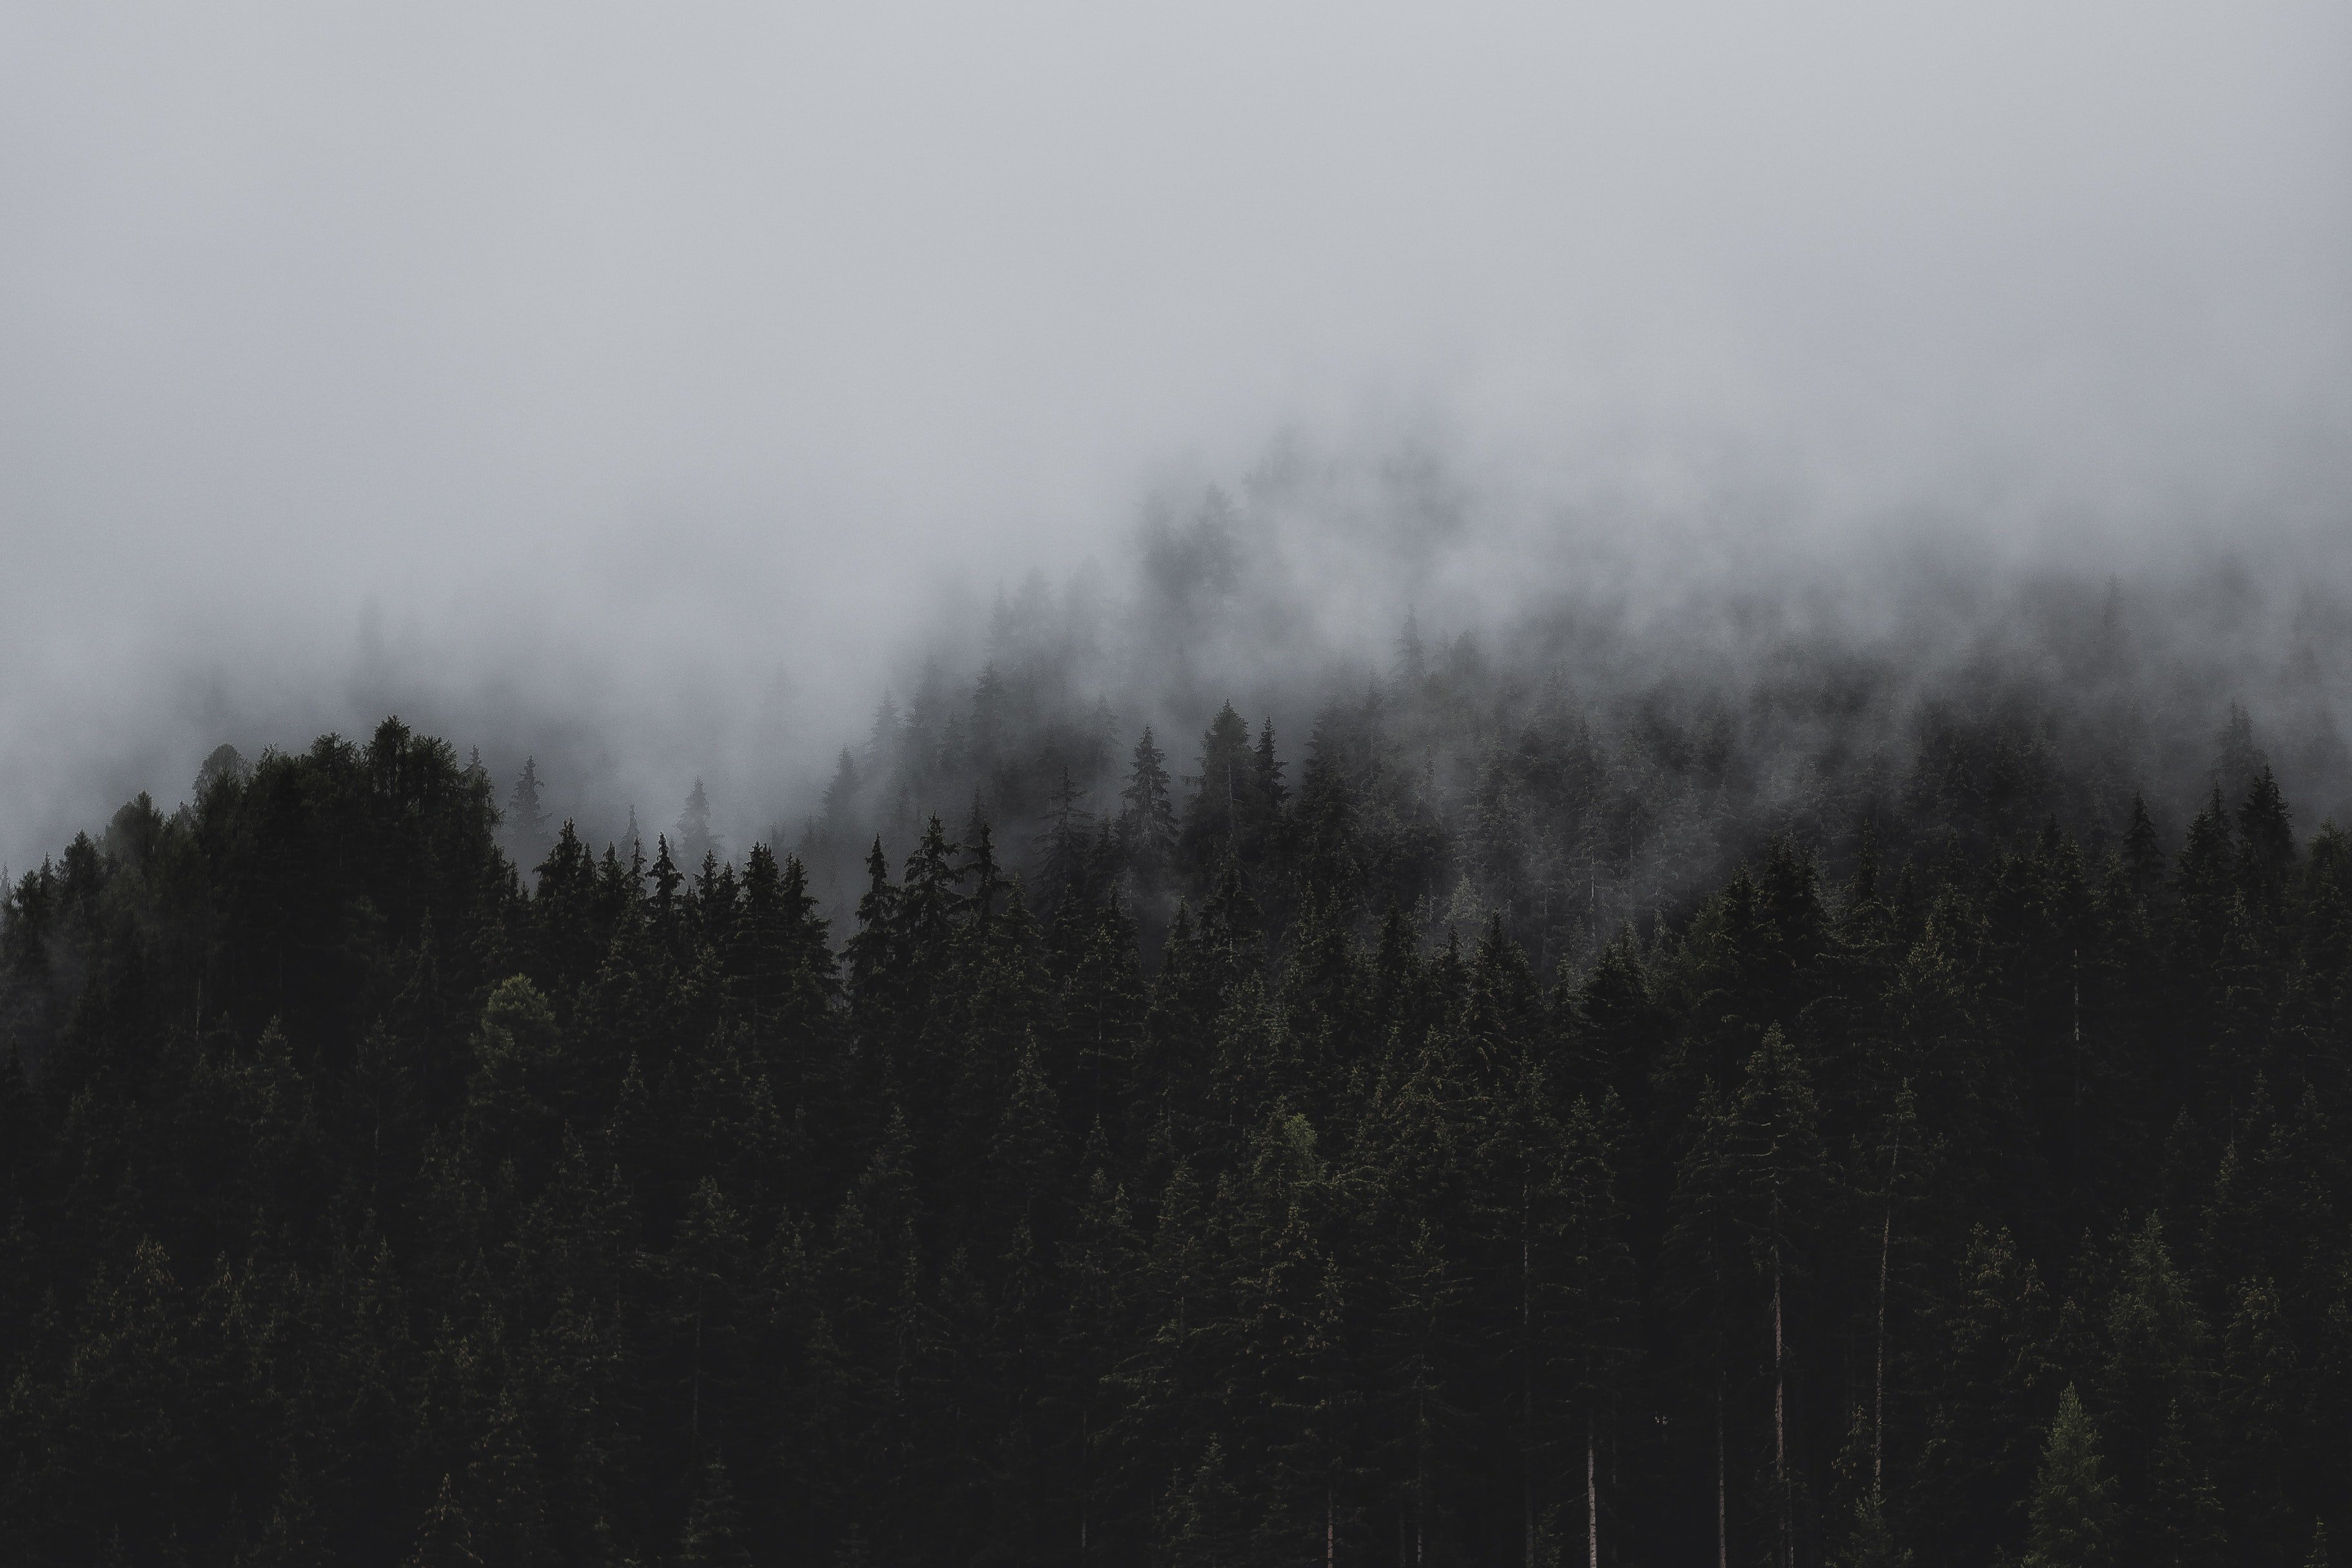 Black 4k Wallpapers For Your Desktop Or Mobile Screen Free